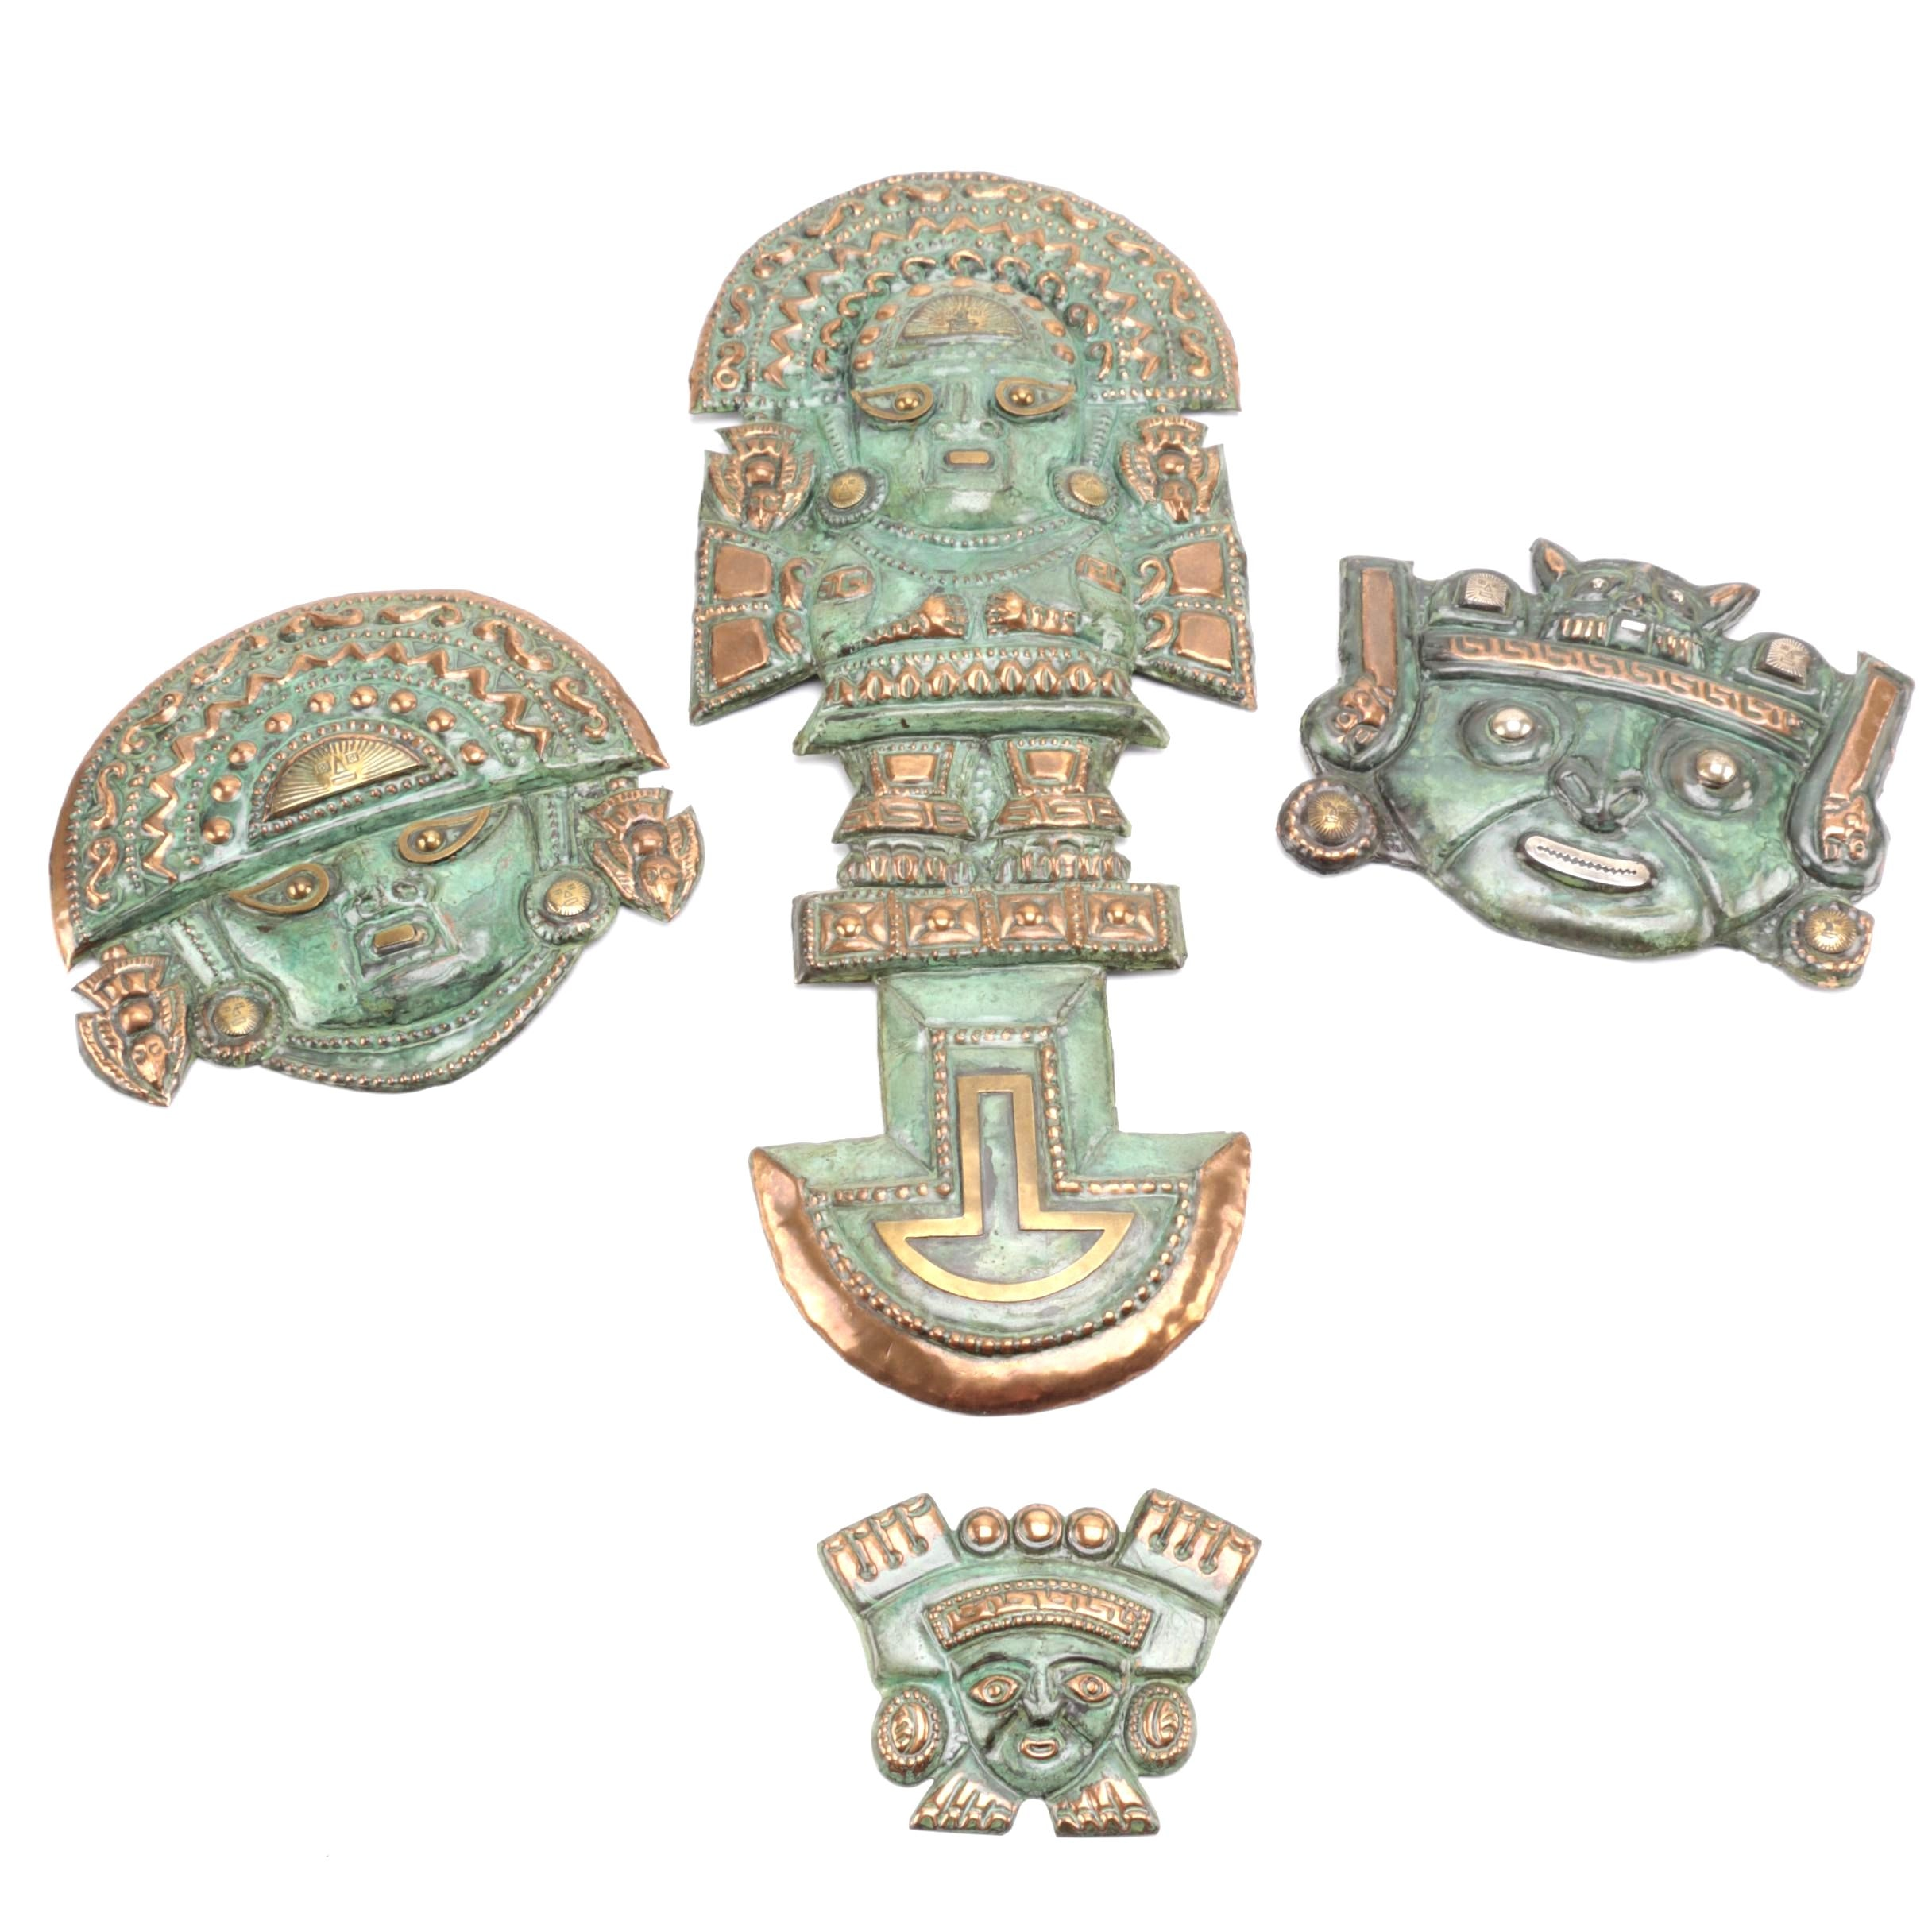 Metal Mayan Inspired Masks with Gold Tone and Copper Tone Accents